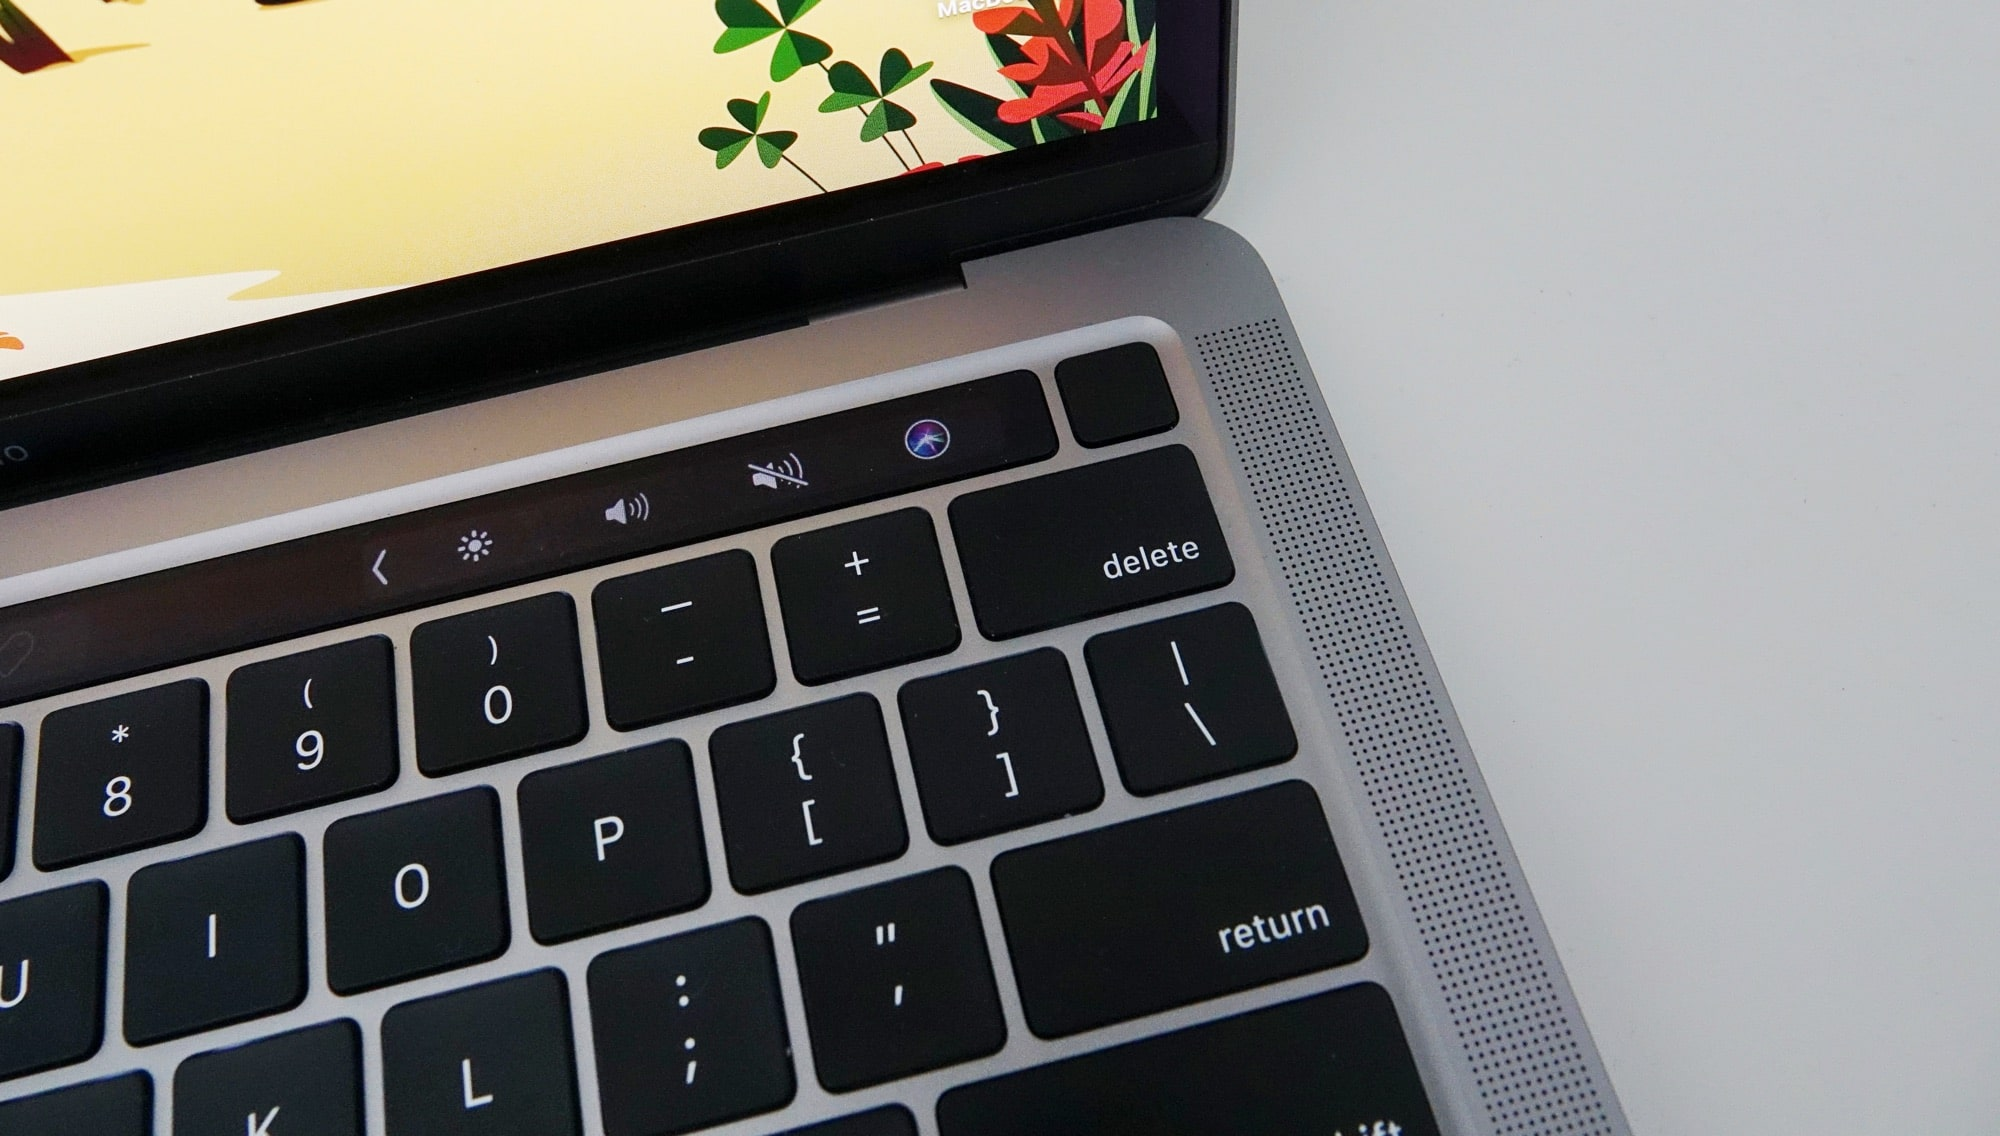 The fingerprint sensor next to the OLED Touch Bar on the 13 inch M1 MBP